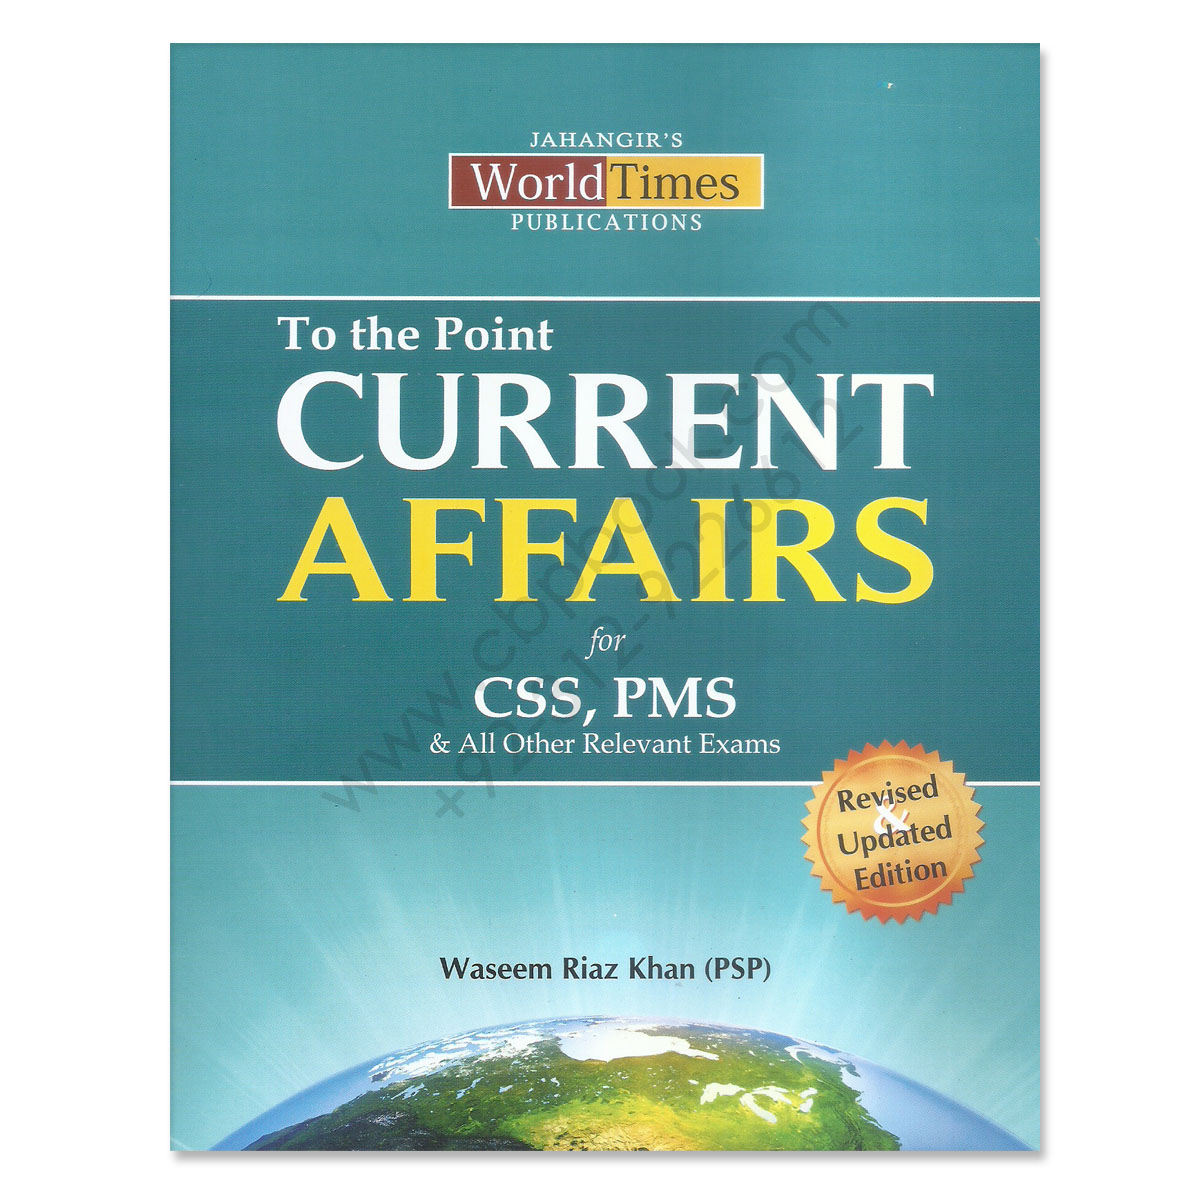 latest current essays current affairs for css 2016 by d line jahangir to the point current affairs for css pms by waseem riaz khan